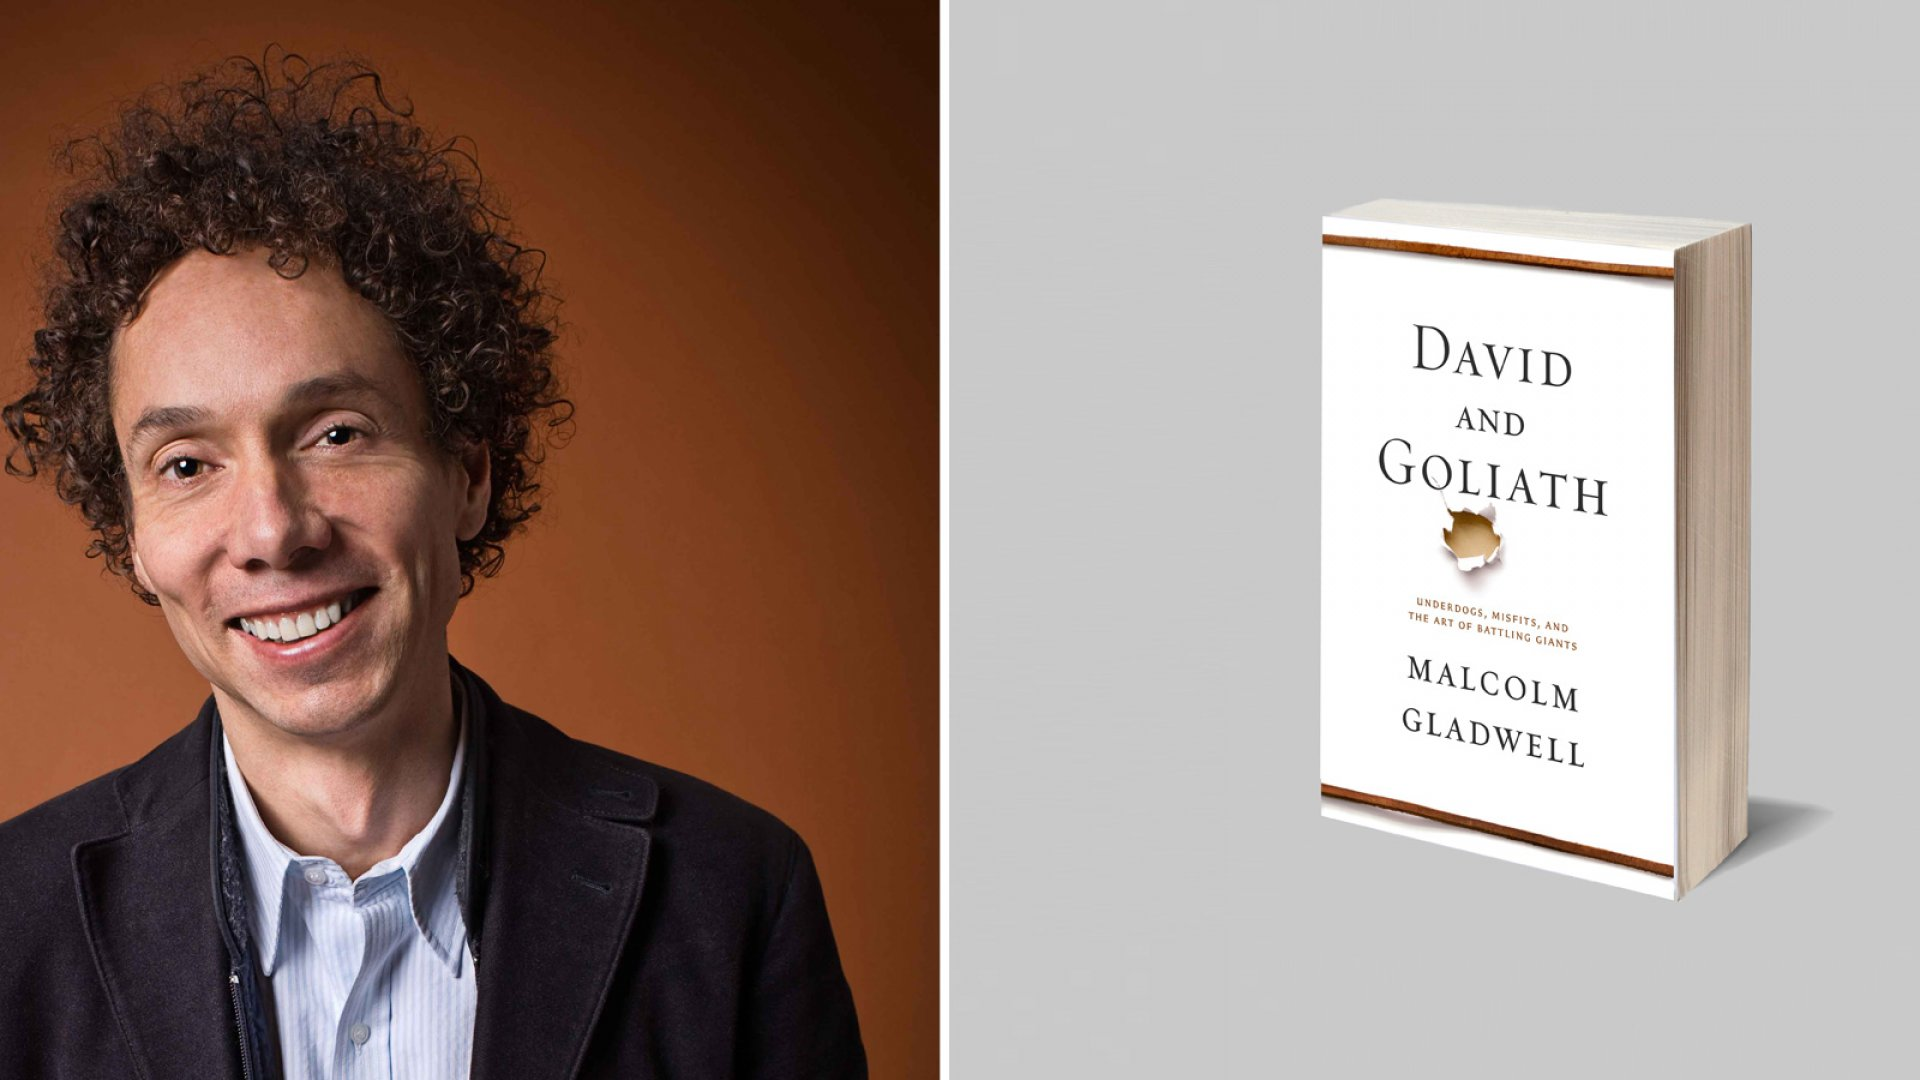 Malcolm Gladwell on the Power of Entrepreneurial Underdogs